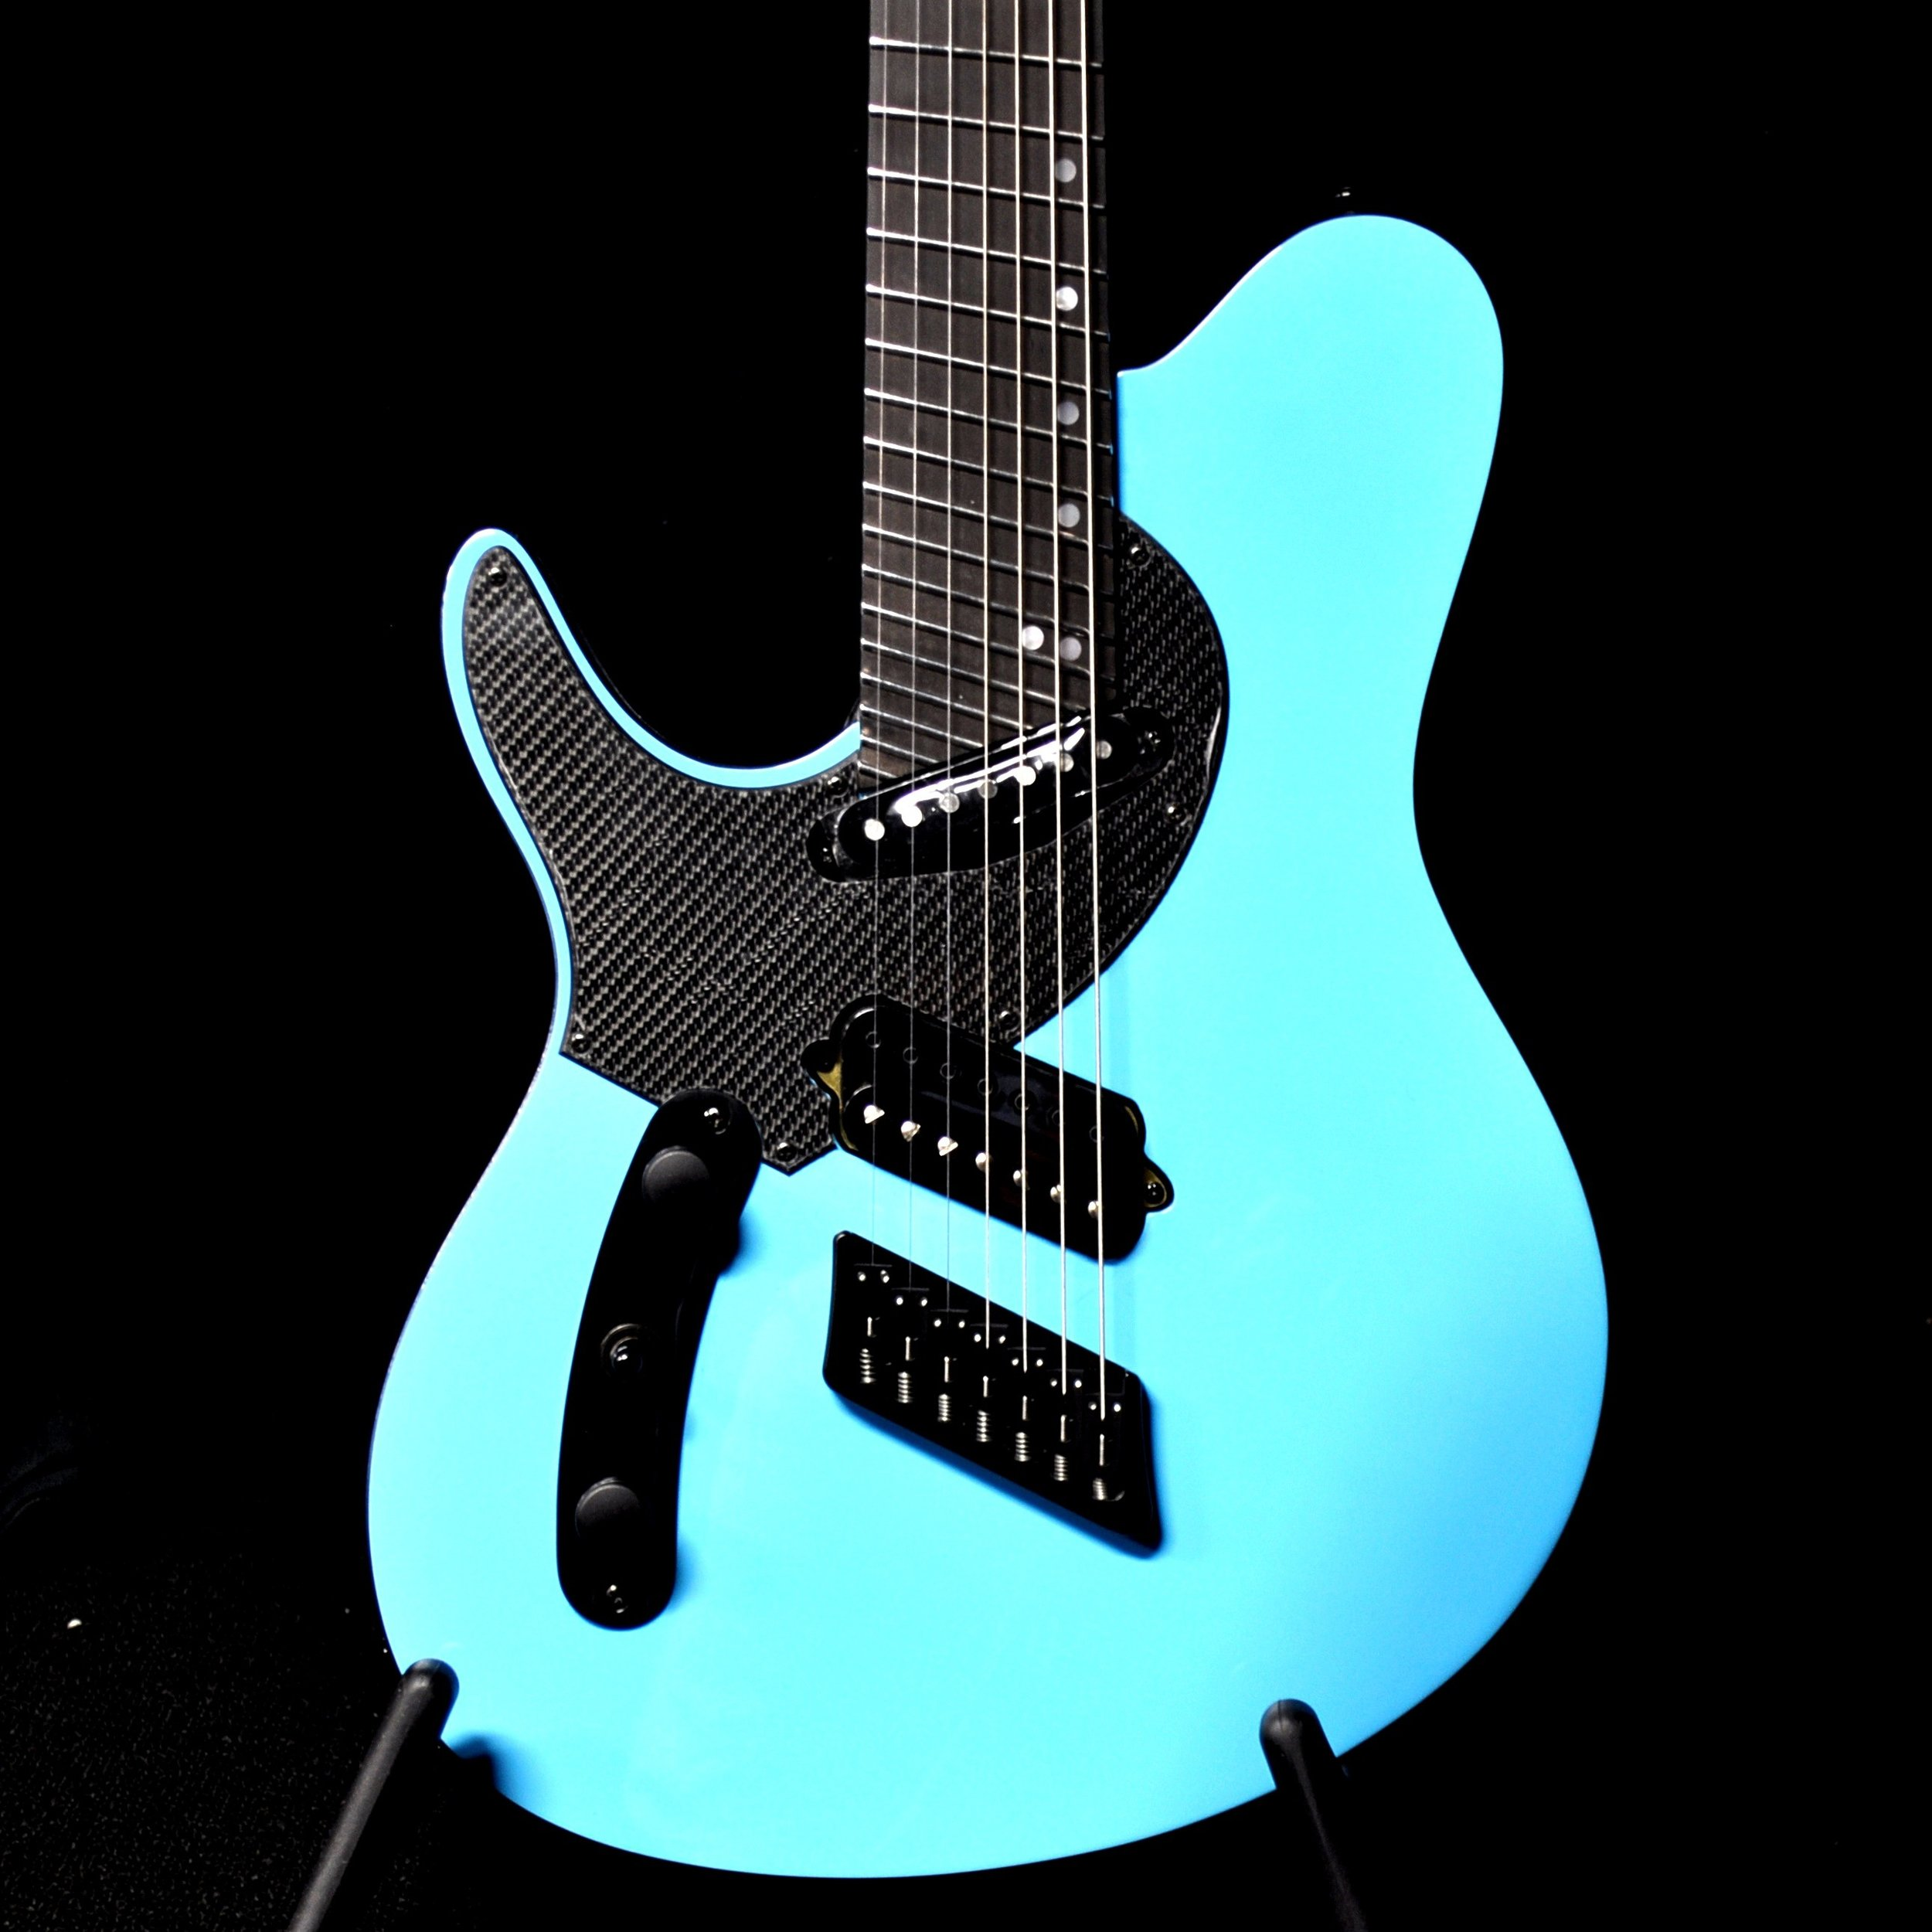 An Ormsby TX GTR 7-String Multi-scale - left handed model that costs the same amount as the right handed model!